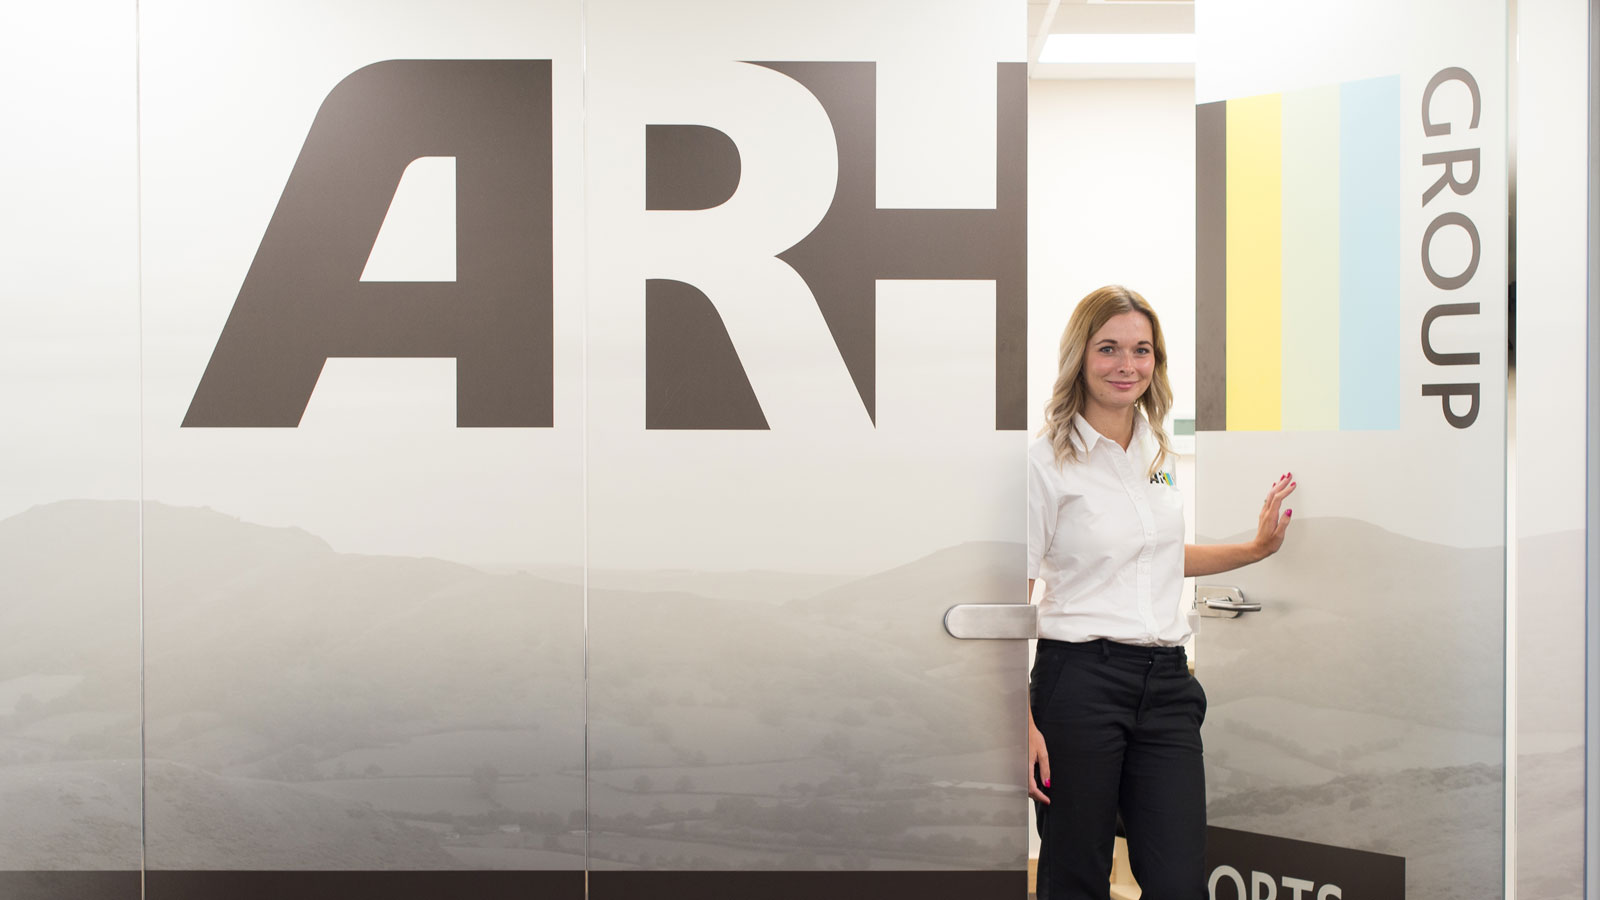 Welcome to the ARH Group - T:01743 365 365, E:info@arh-group.co.uk